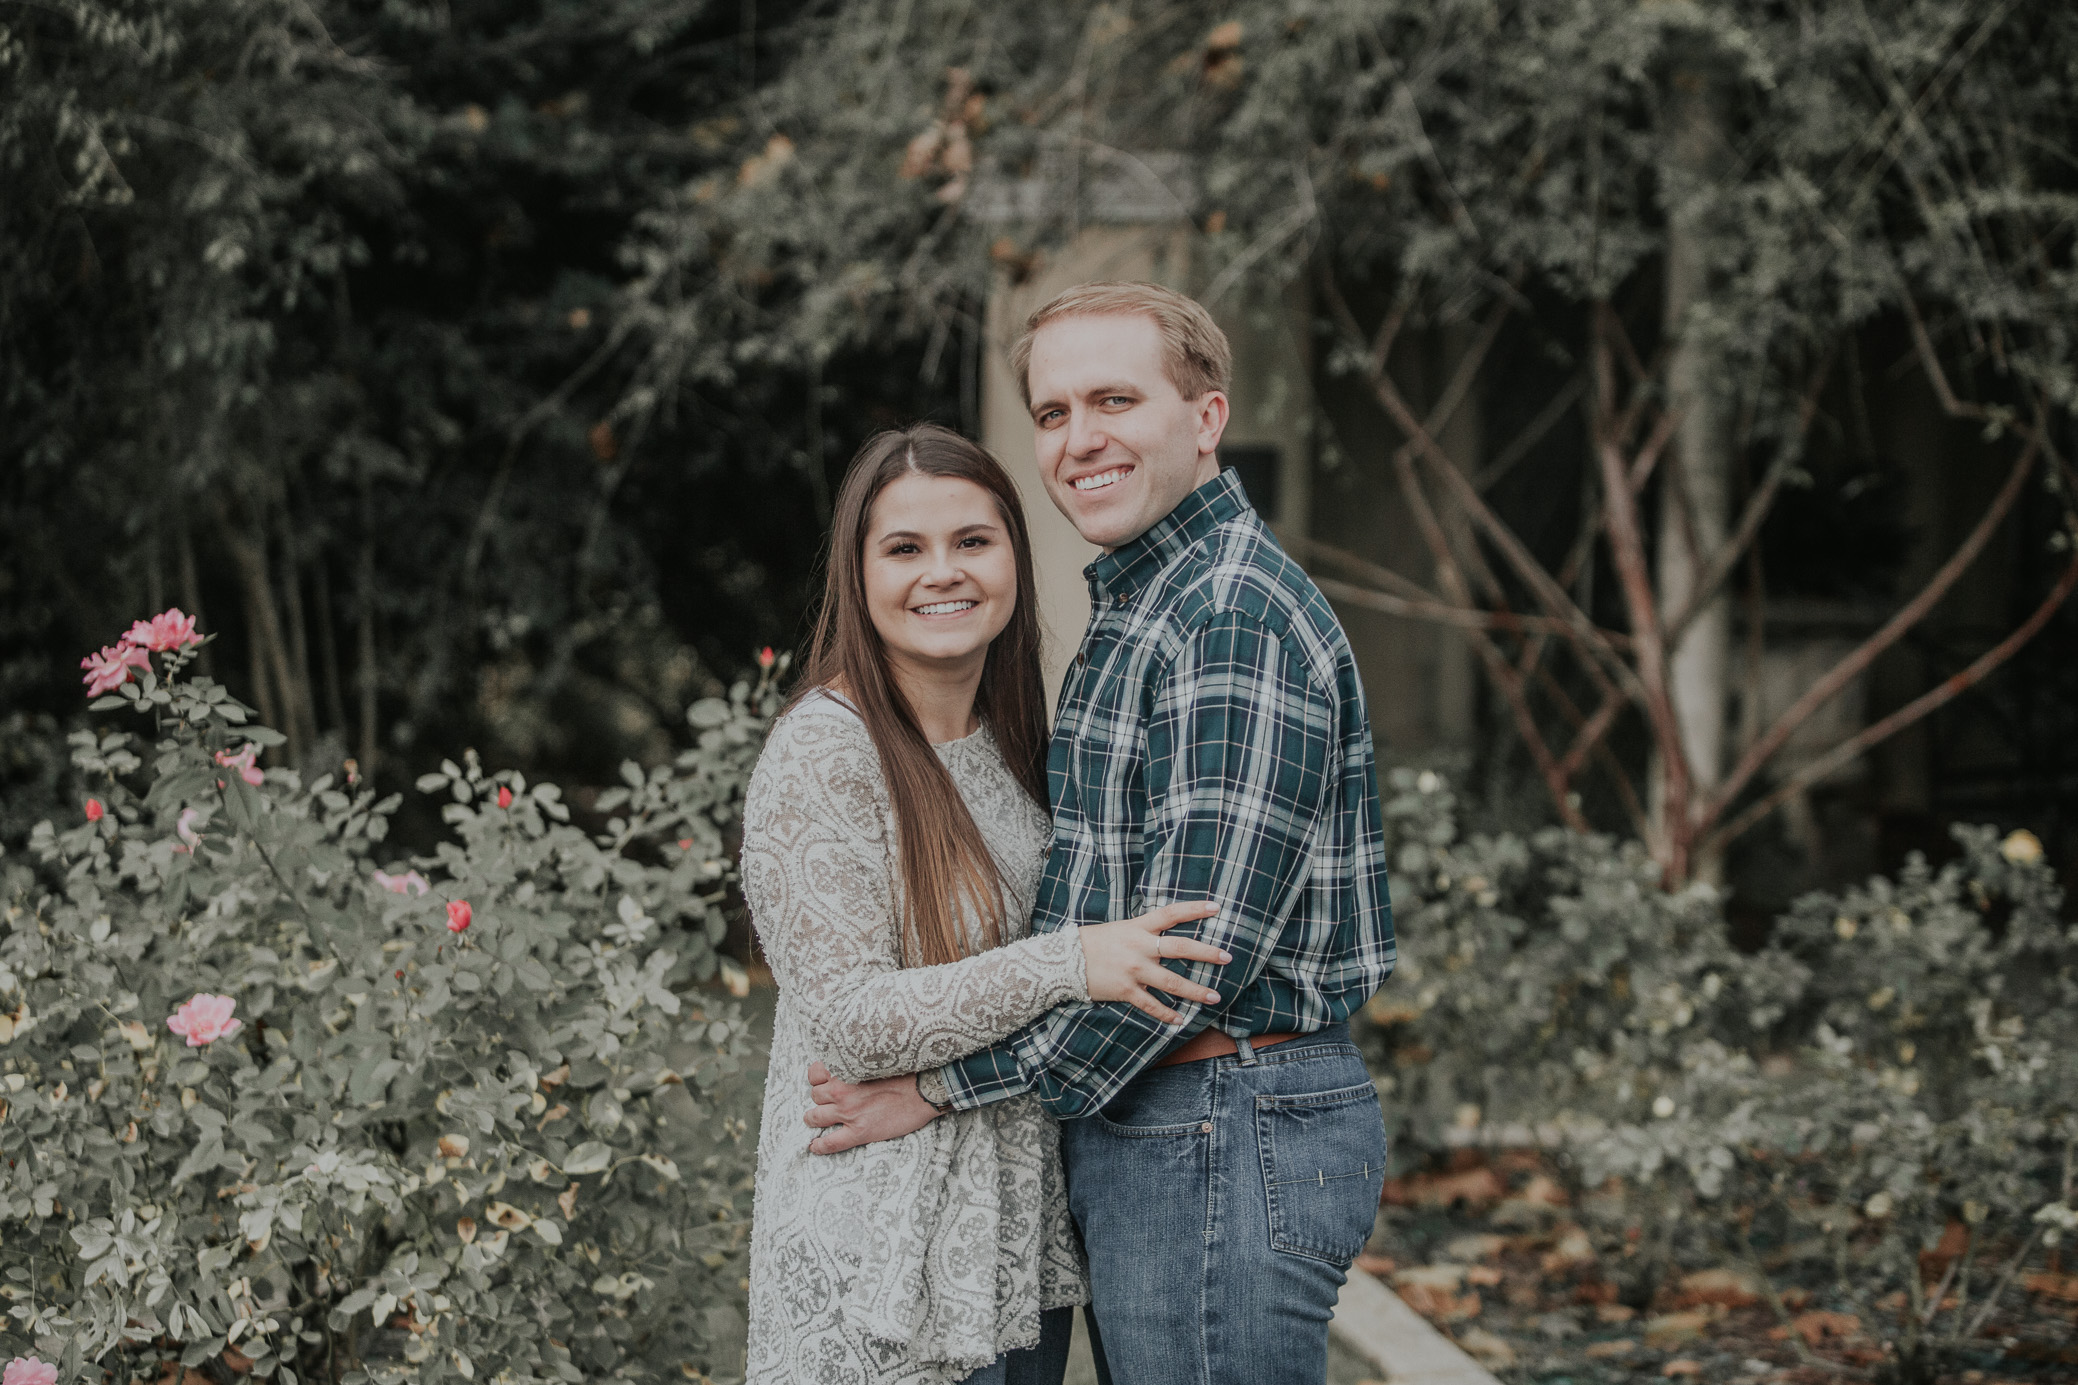 Birmingham, Alabama Engagement photography with Elise and Neil at the Birmingham Botanical Gardens on November 18th, 2017 by David A. Smith of DSmithImages Wedding Photography, Portraits, and Events.